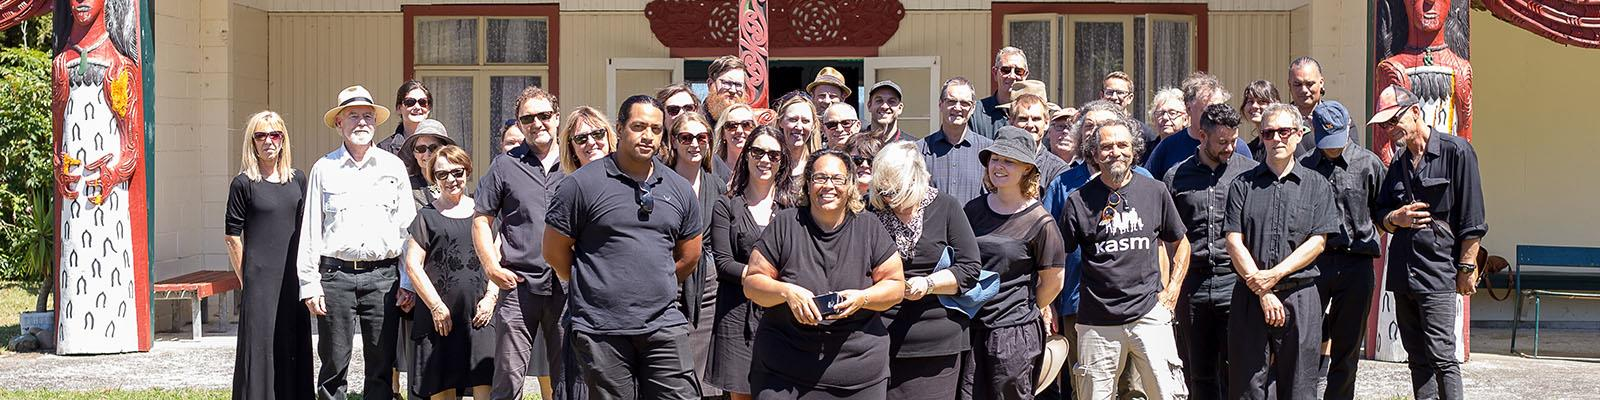 Media arts team at noho marae